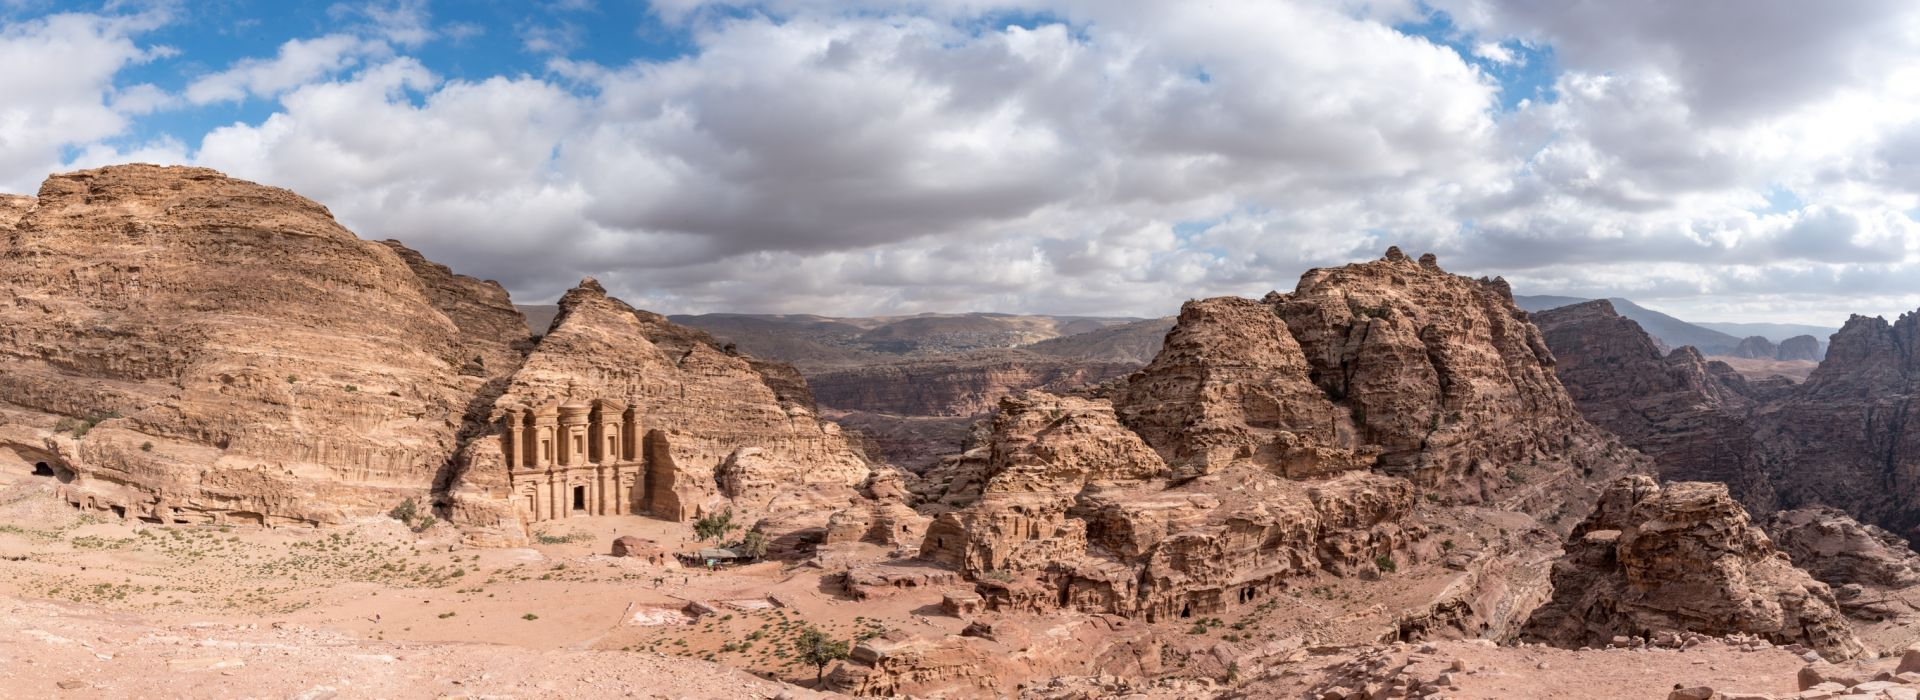 Special interests and hobbies Tours in Jordan